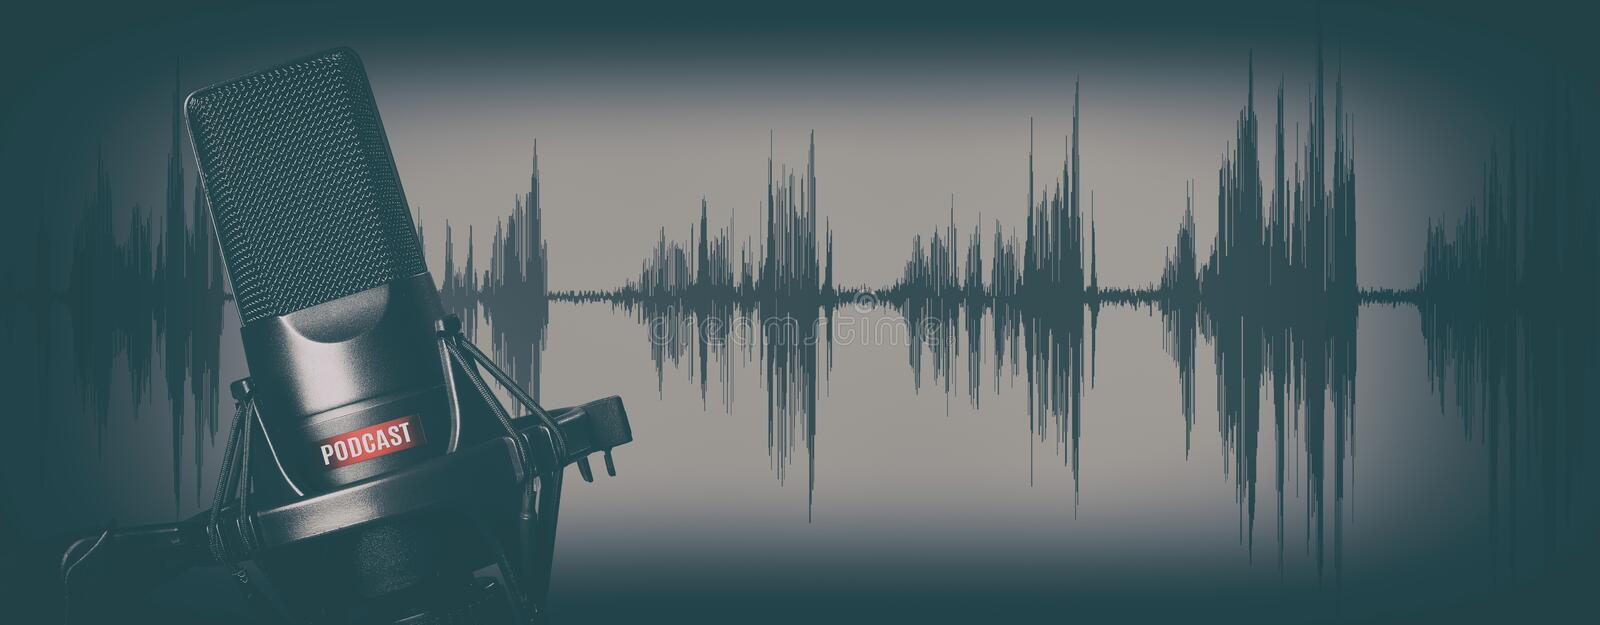 Retro style records podcasts concept. Microphone royalty free stock image